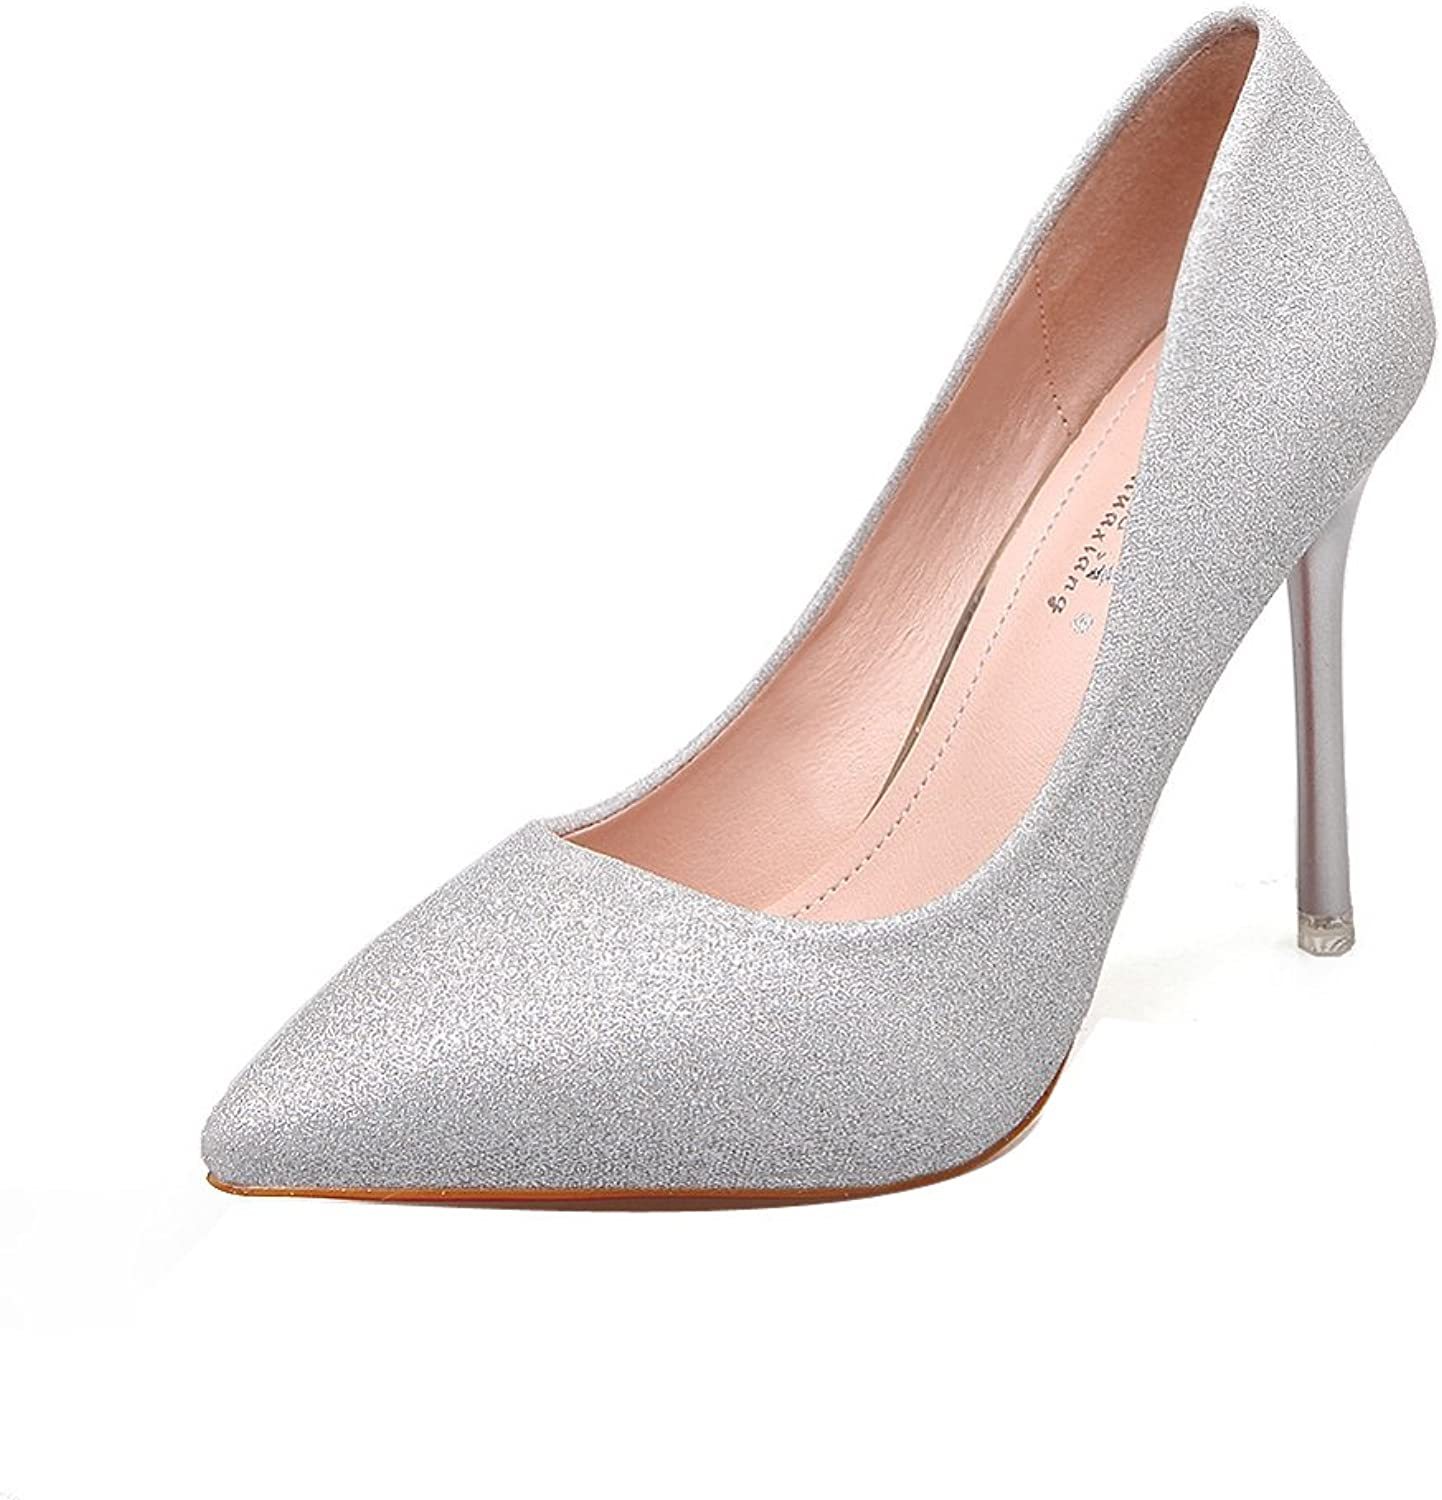 Ladola Womens Pointed-Toe Solid Tuxedo Slip-Resistant Urethane Pumps shoes